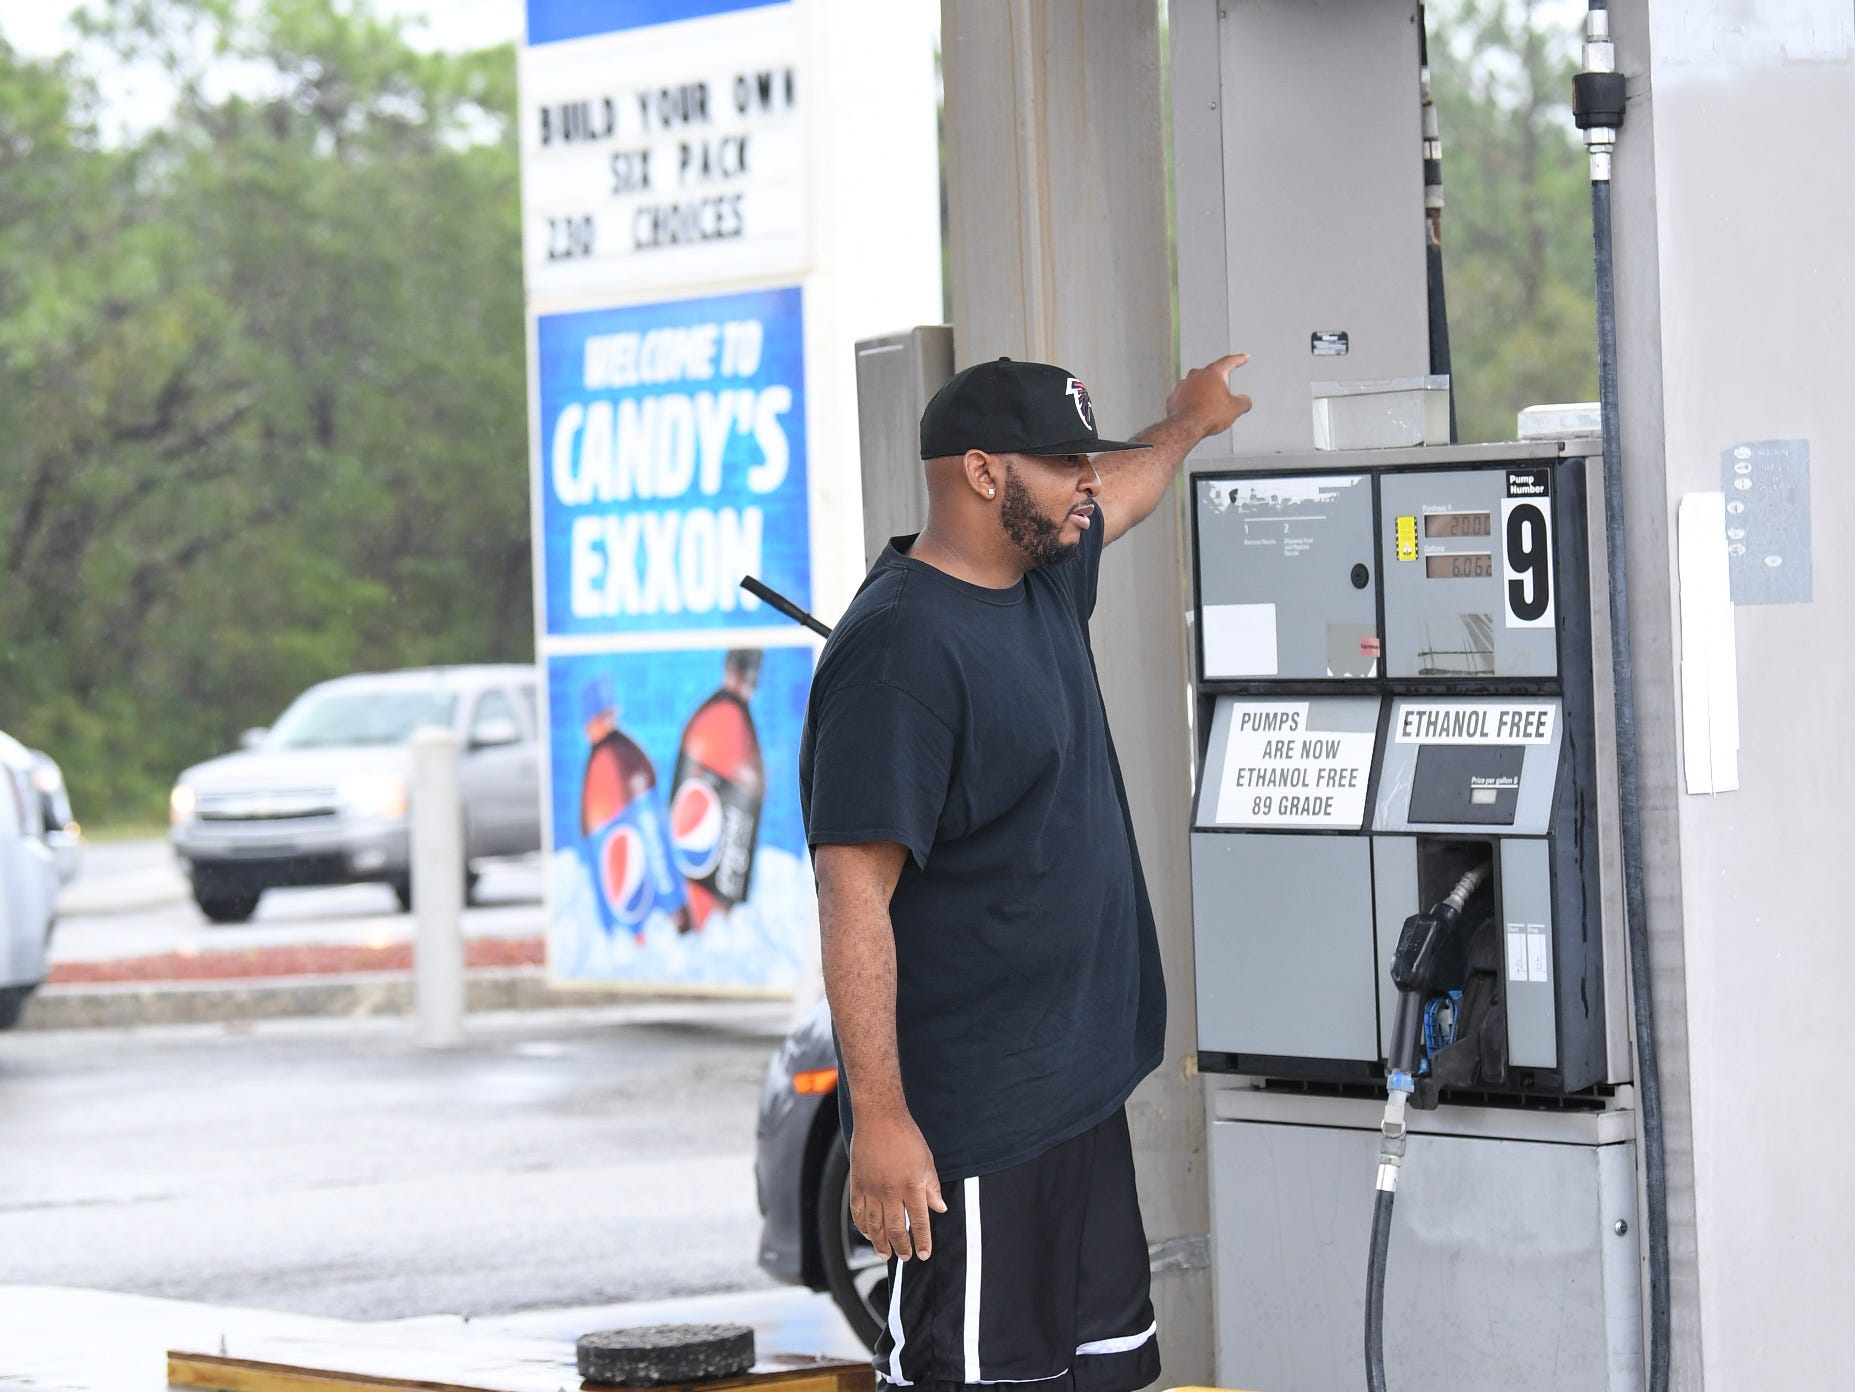 Robert Thomas gets gas from Candy's Exxon one of the few stations open in Wilmington on Saturday, Sept. 15, 2018.